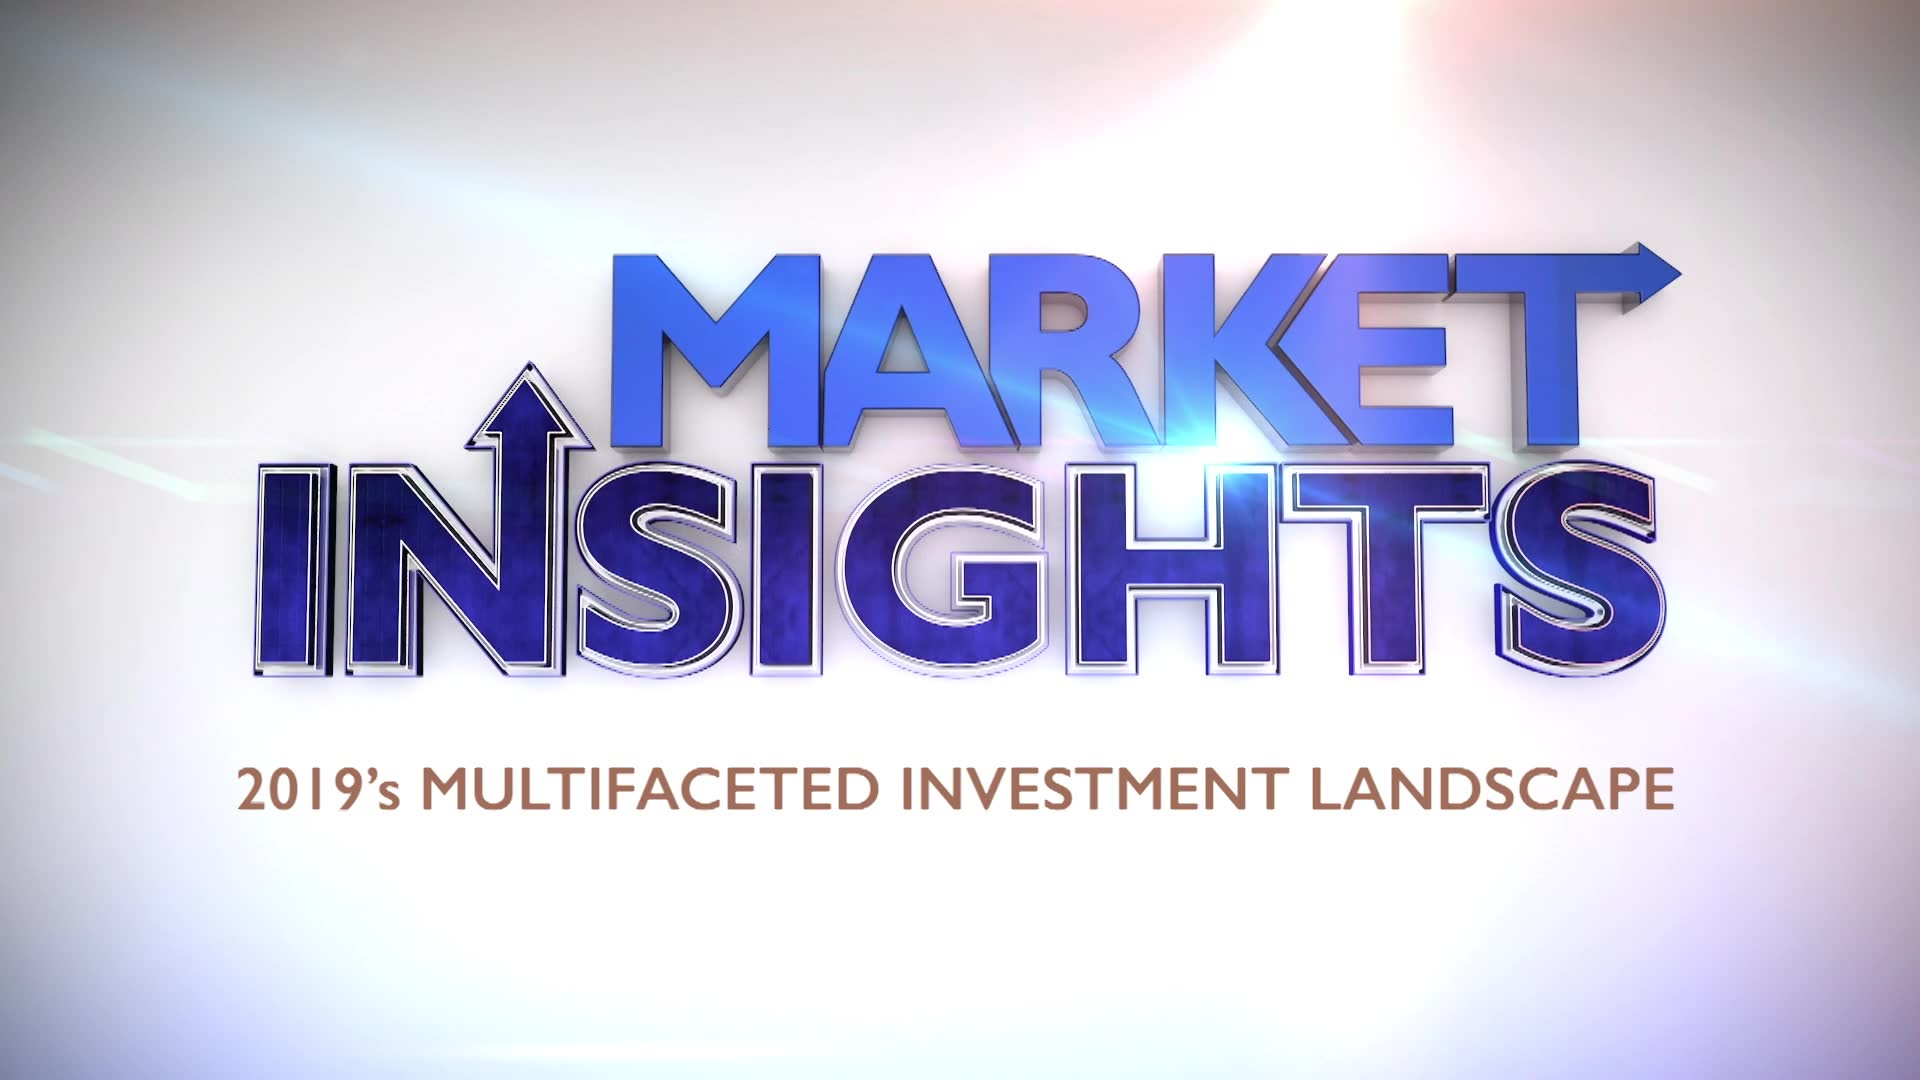 2019's Multifaceted Investment Landscape